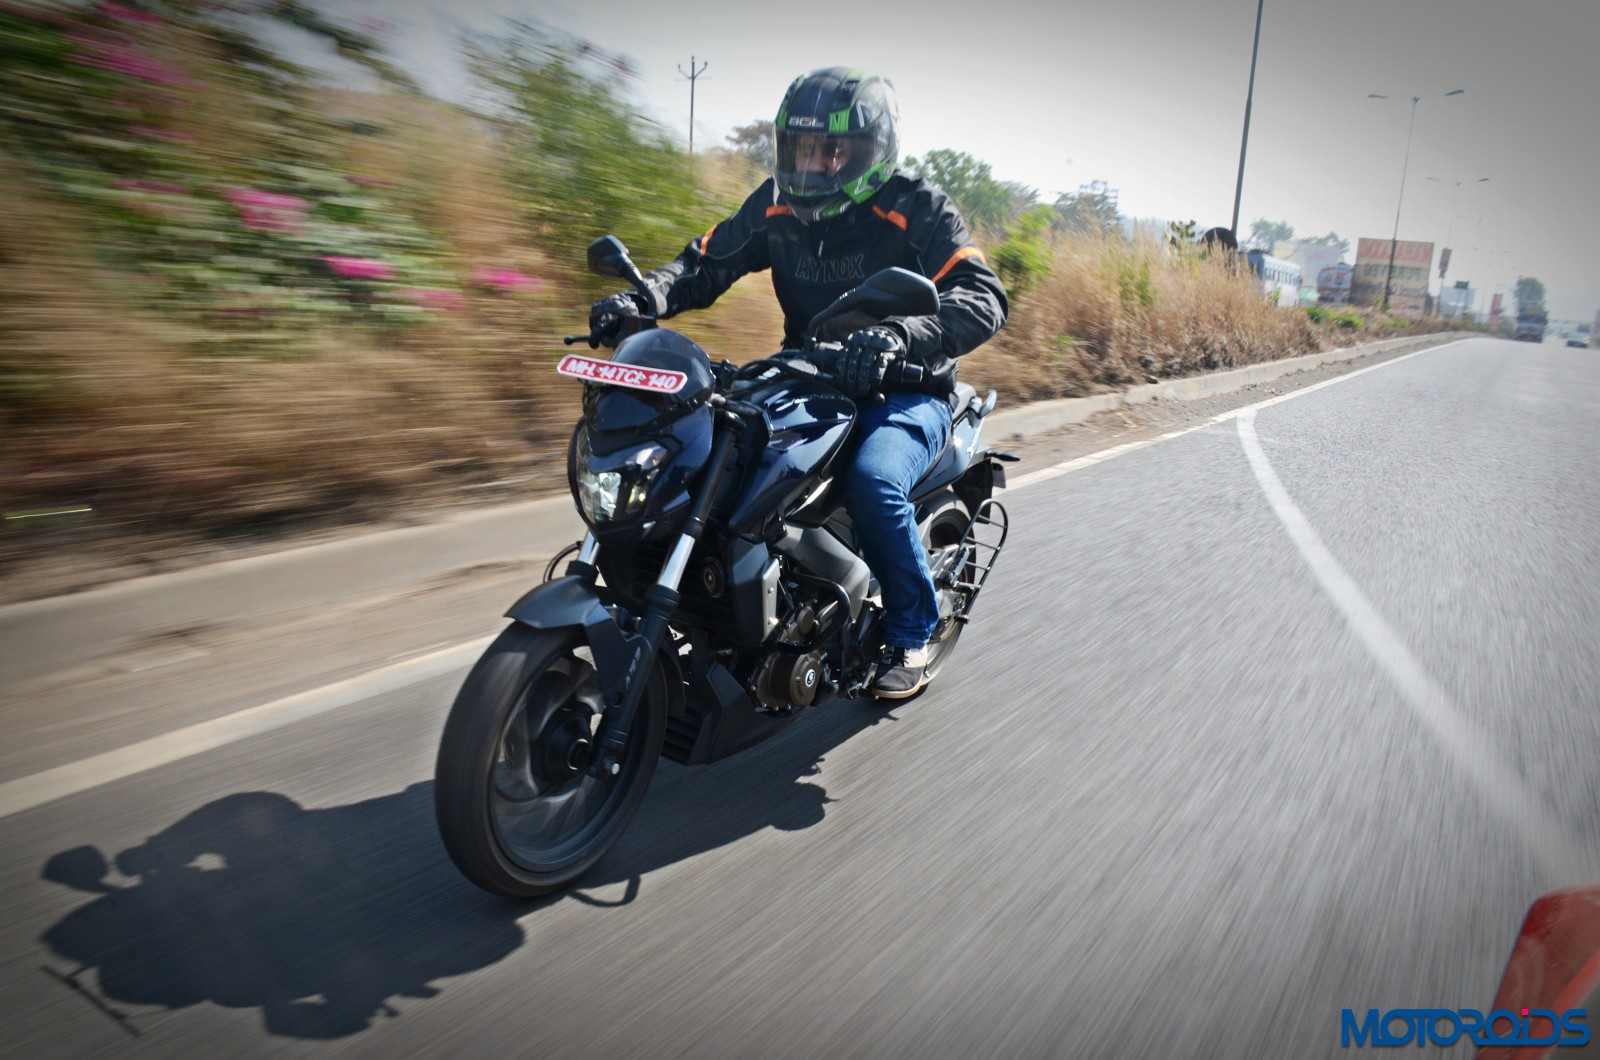 Bajaj-Dominar-400-in-action-3